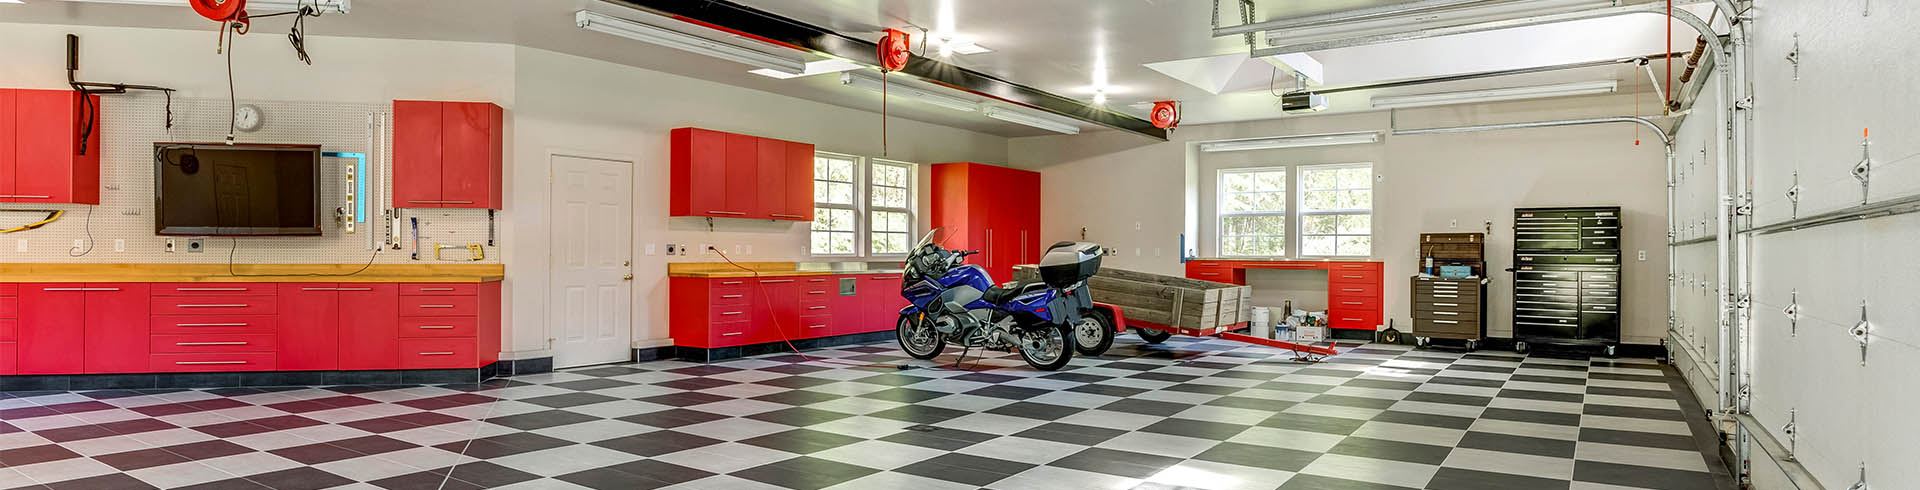 Garage Cabinet System and Checkerboard Garage Floor